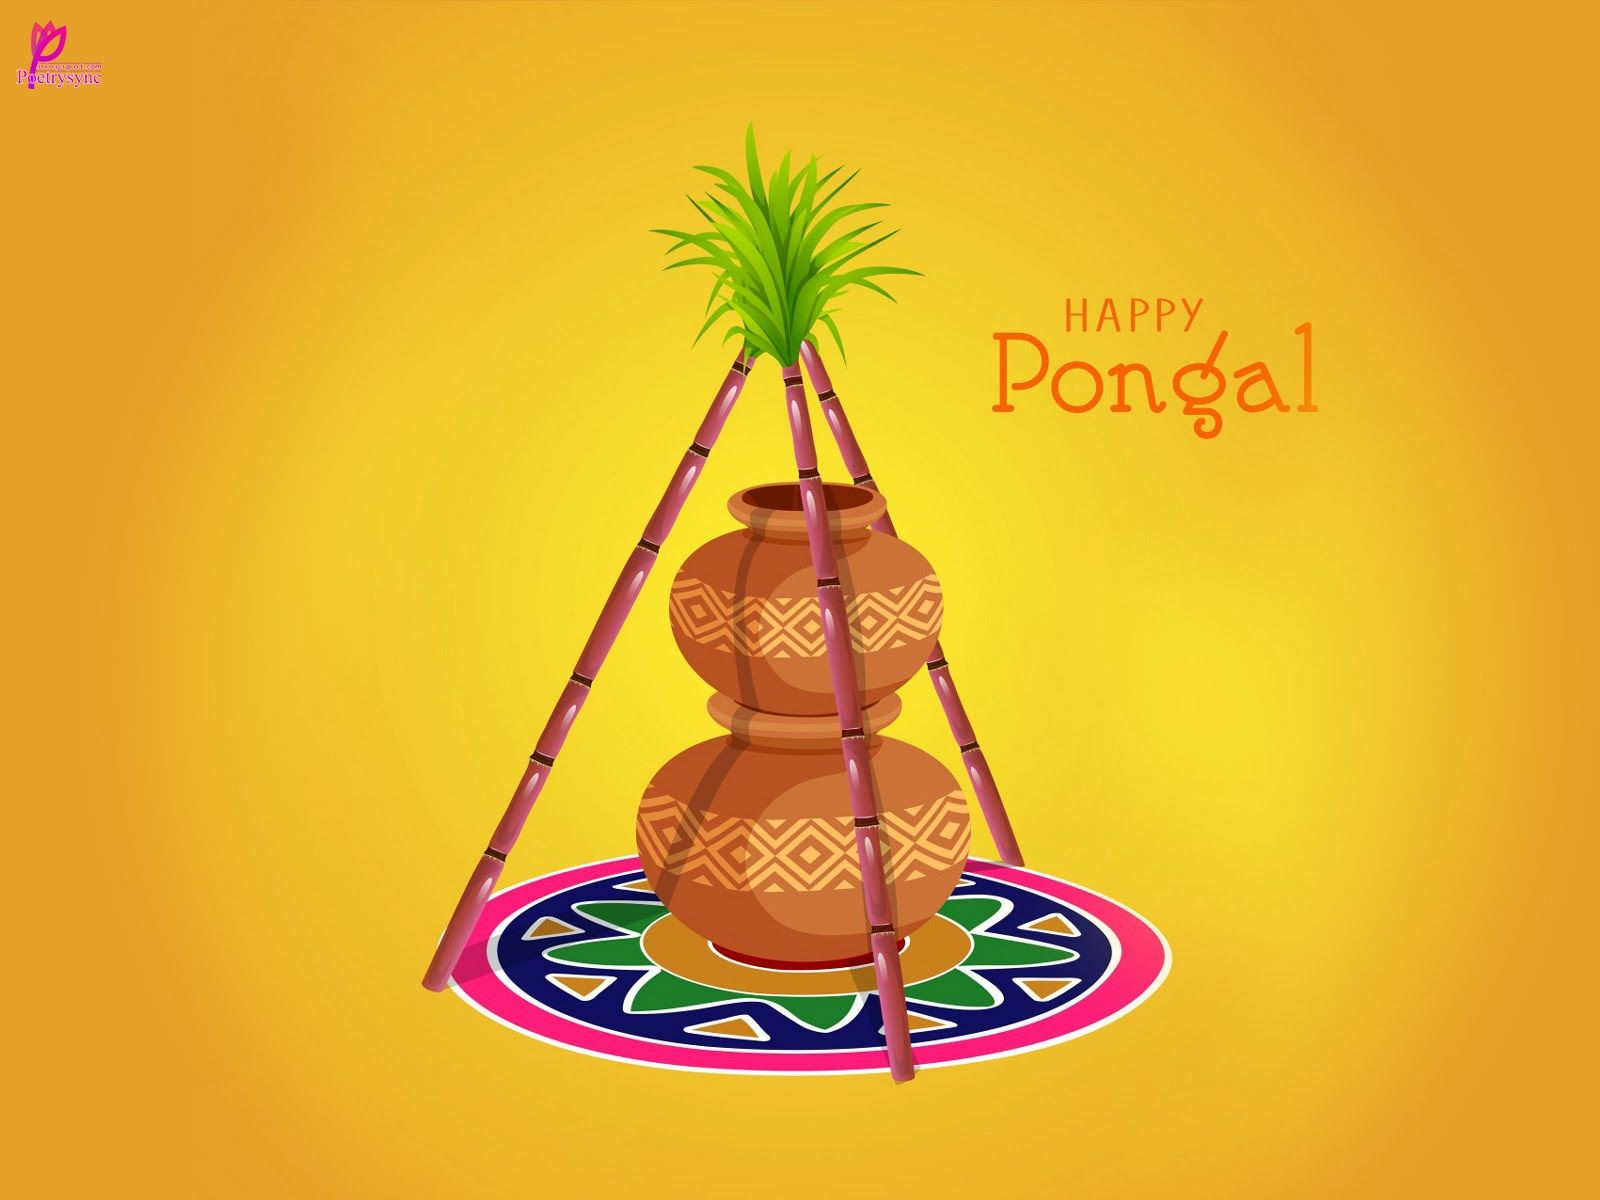 beast wishes of happy pongal greetings card with sms and